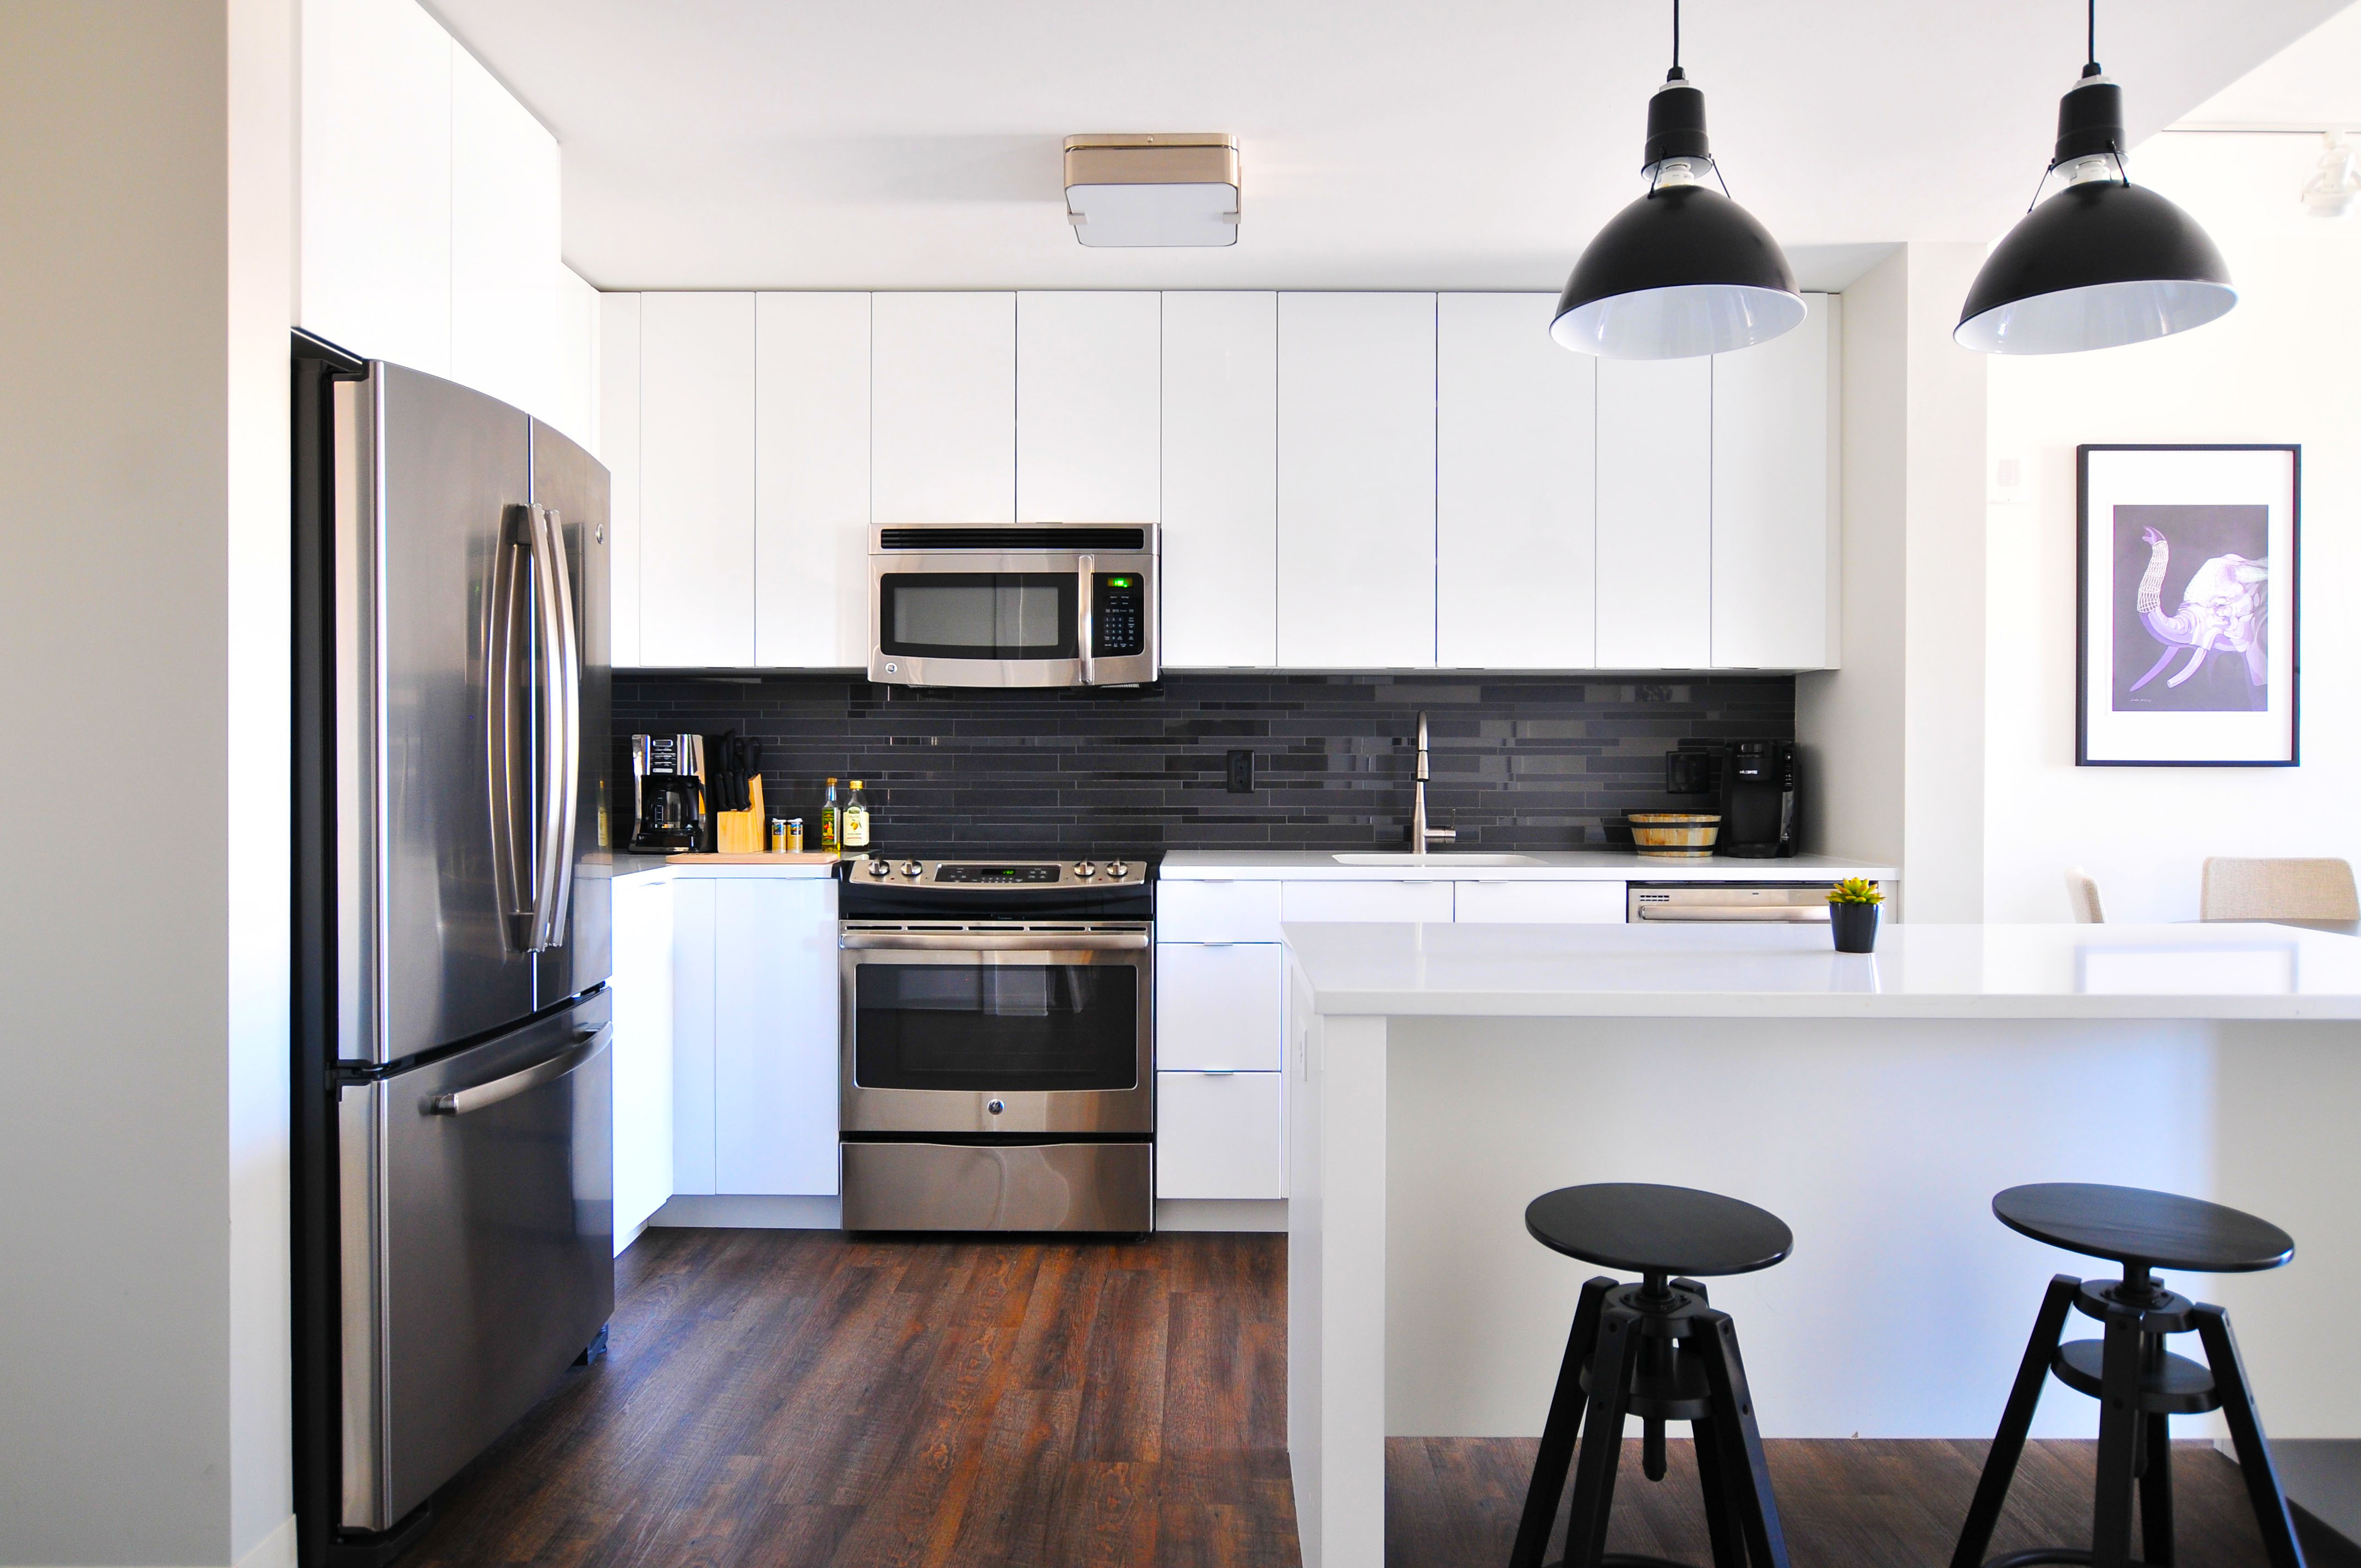 contemporary-kitchen-cabinets-with-white-painted-kitchen-cabinets-pictures-for-new-remodel-kitchen-cabinets